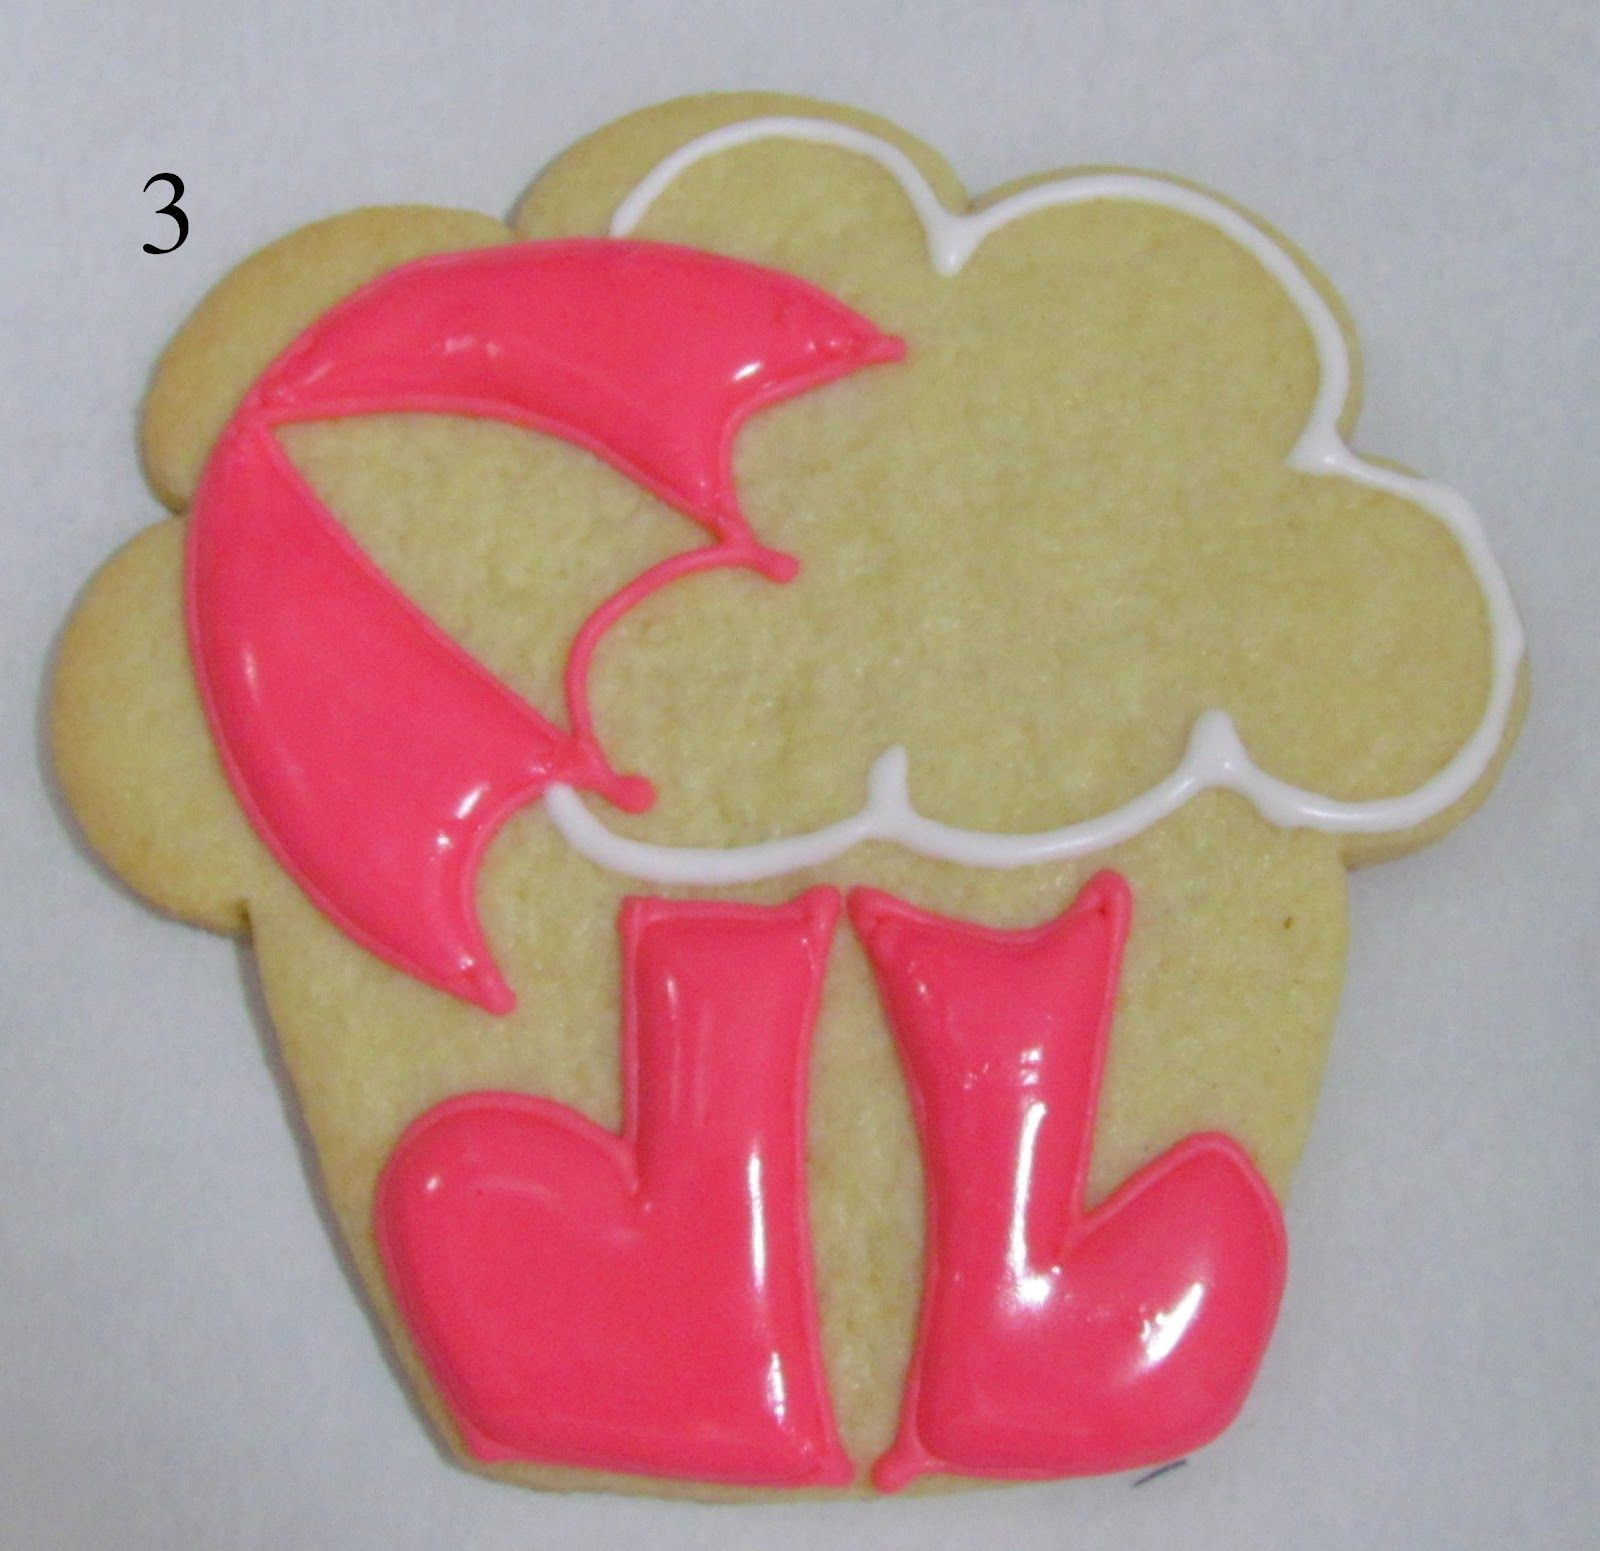 CancunCOOKIES: wellies and umbrellas for a cloudy day...with a cupcake cutter!